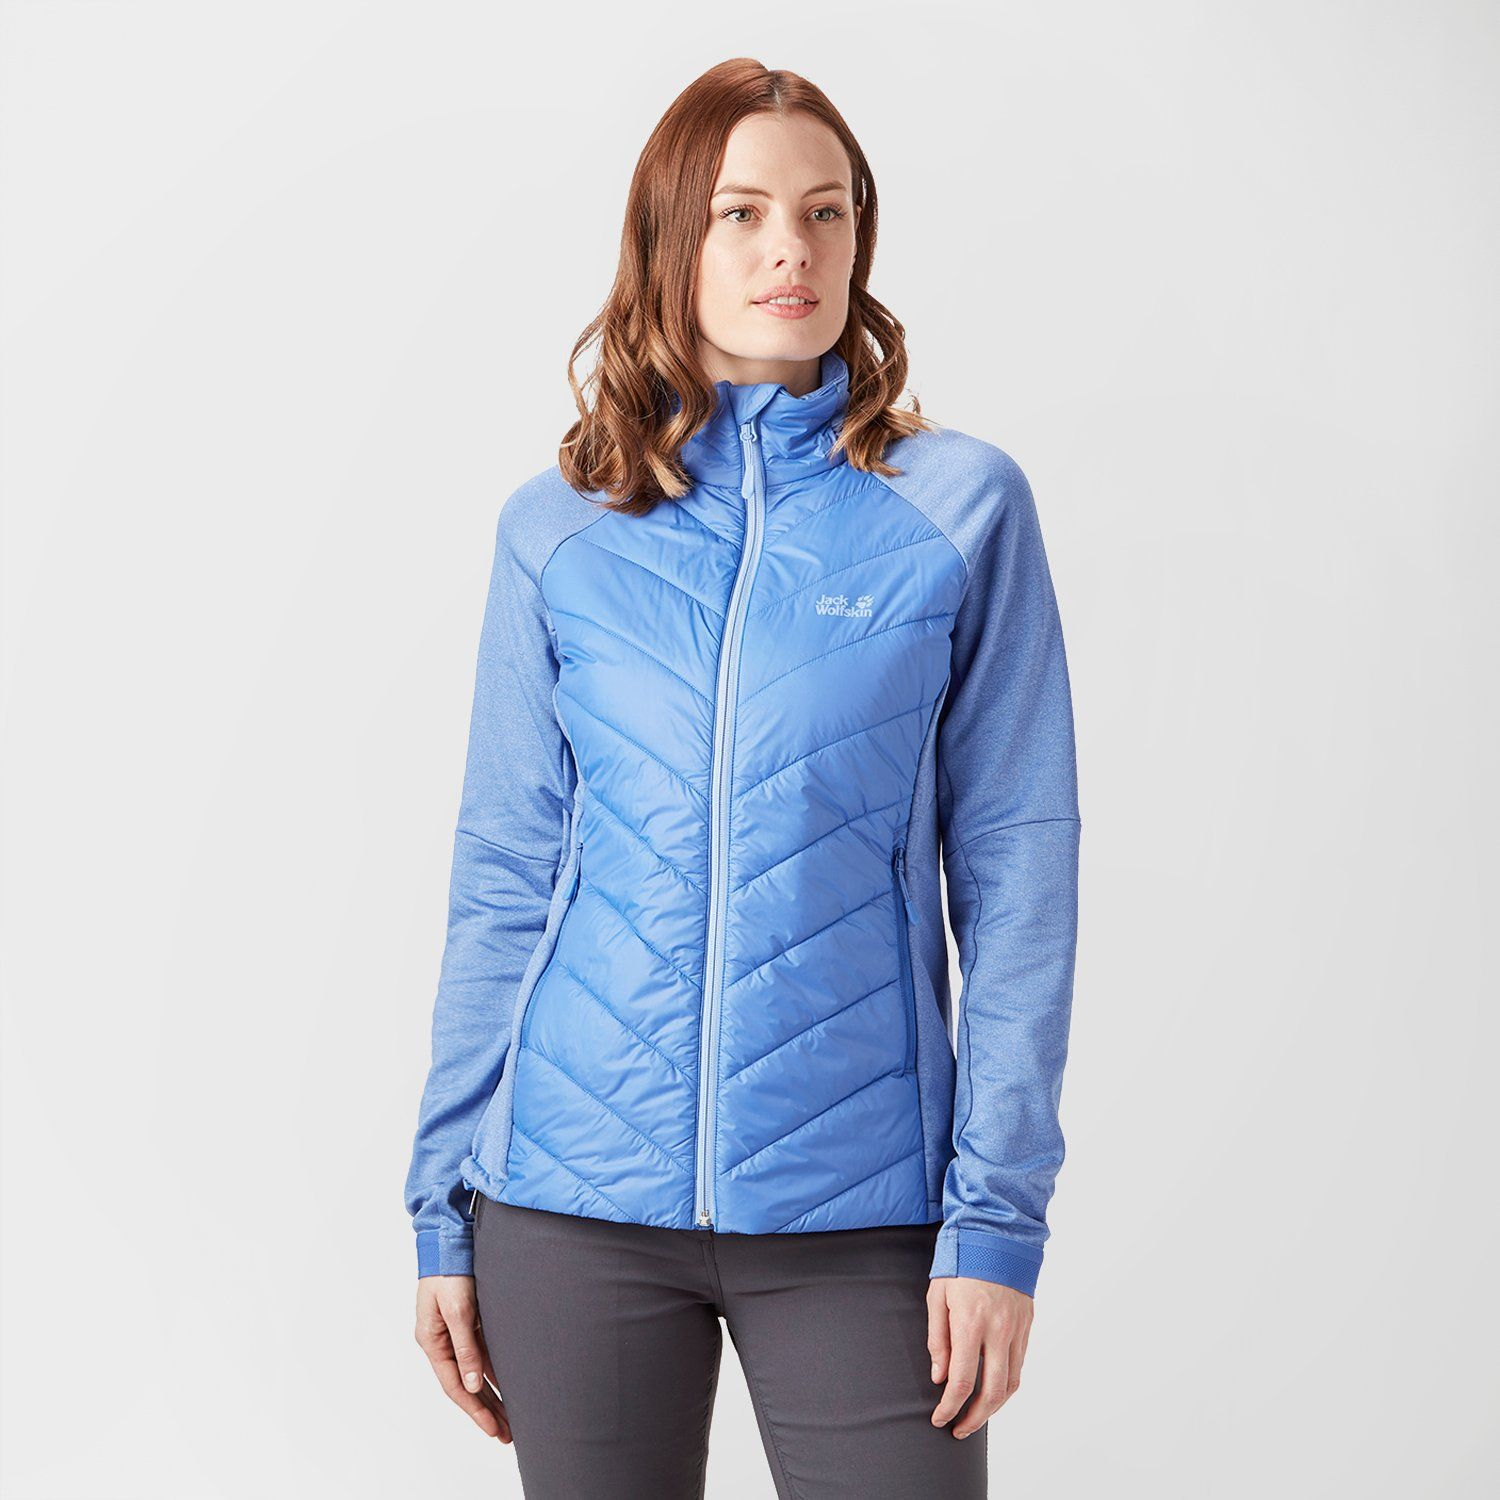 JACK WOLFSKIN Women's Sutherland Crossing Fleece Jacket